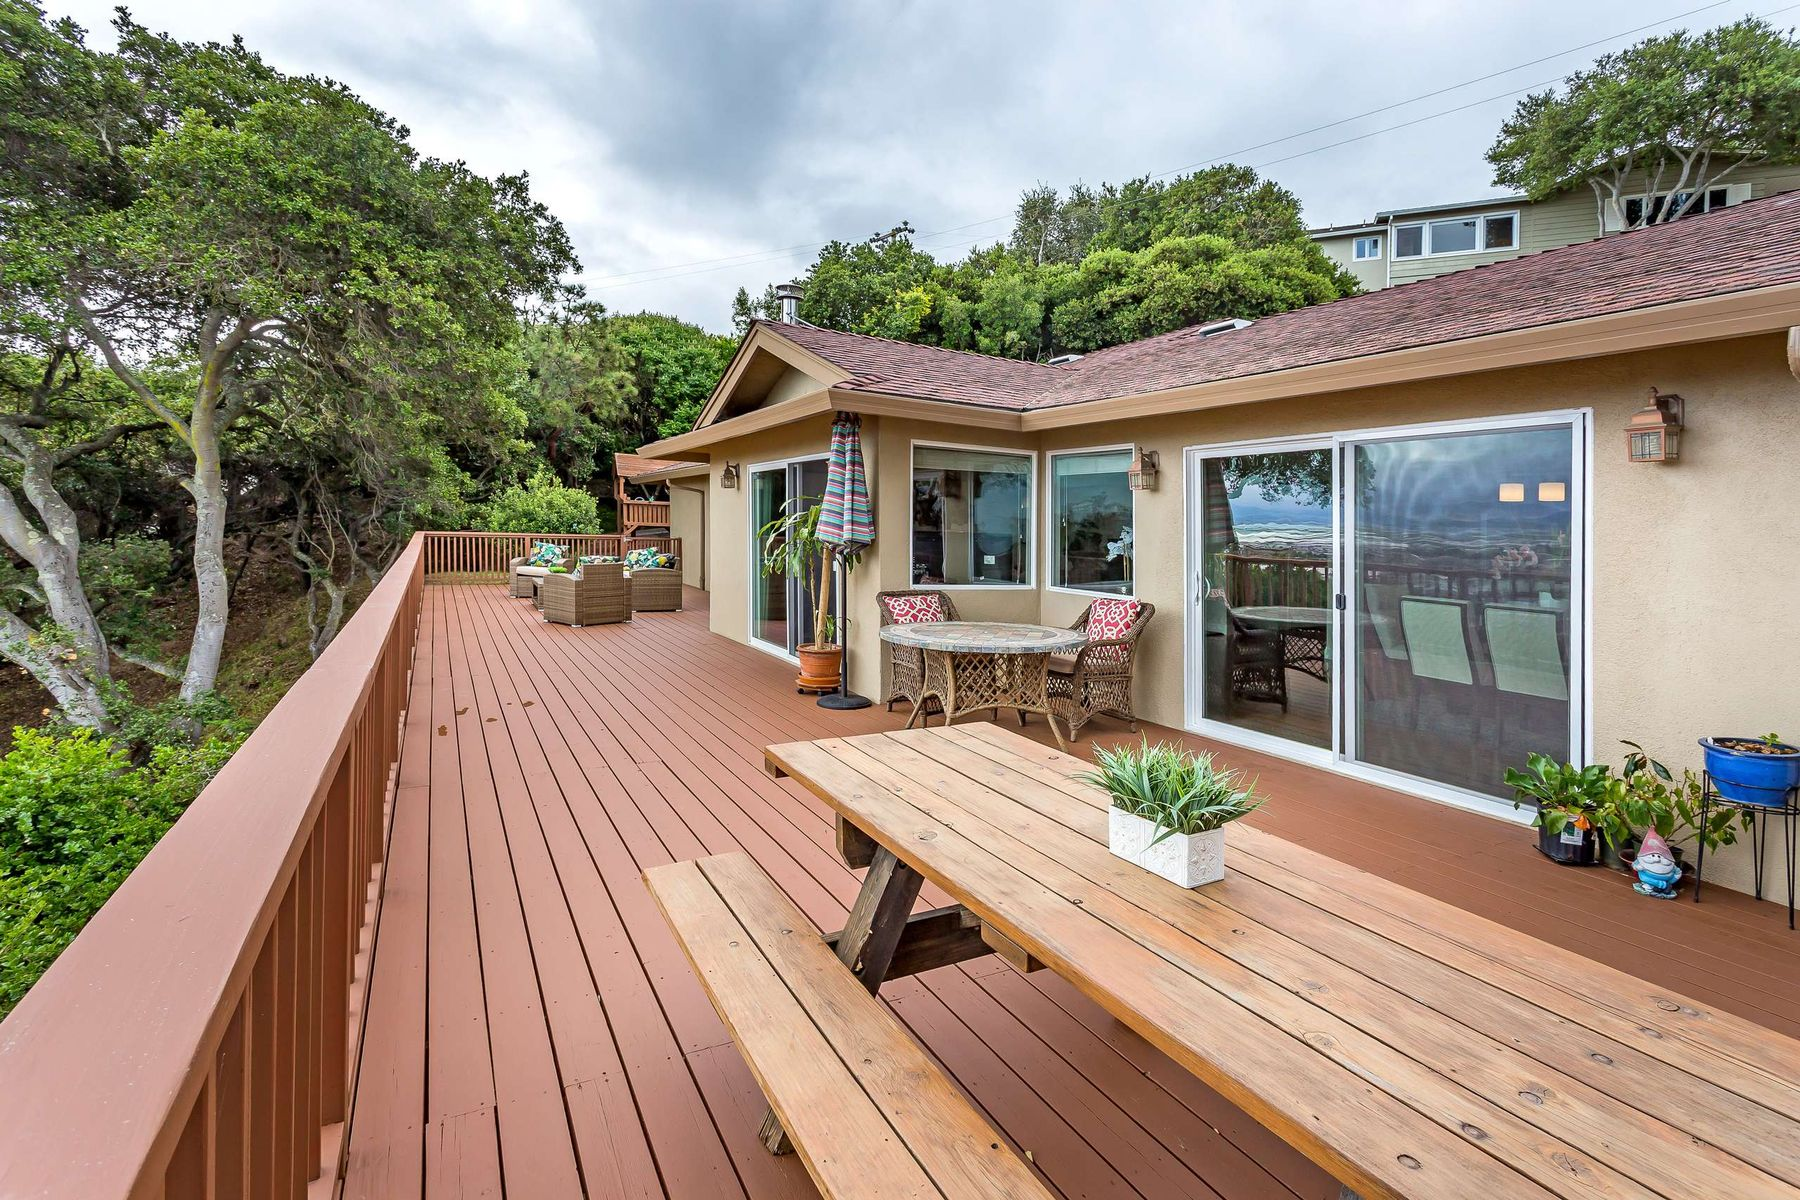 Additional photo for property listing at Elegant Rancher With Views and Privacy 1239 Talbryn Dr Belmont, California 94002 United States